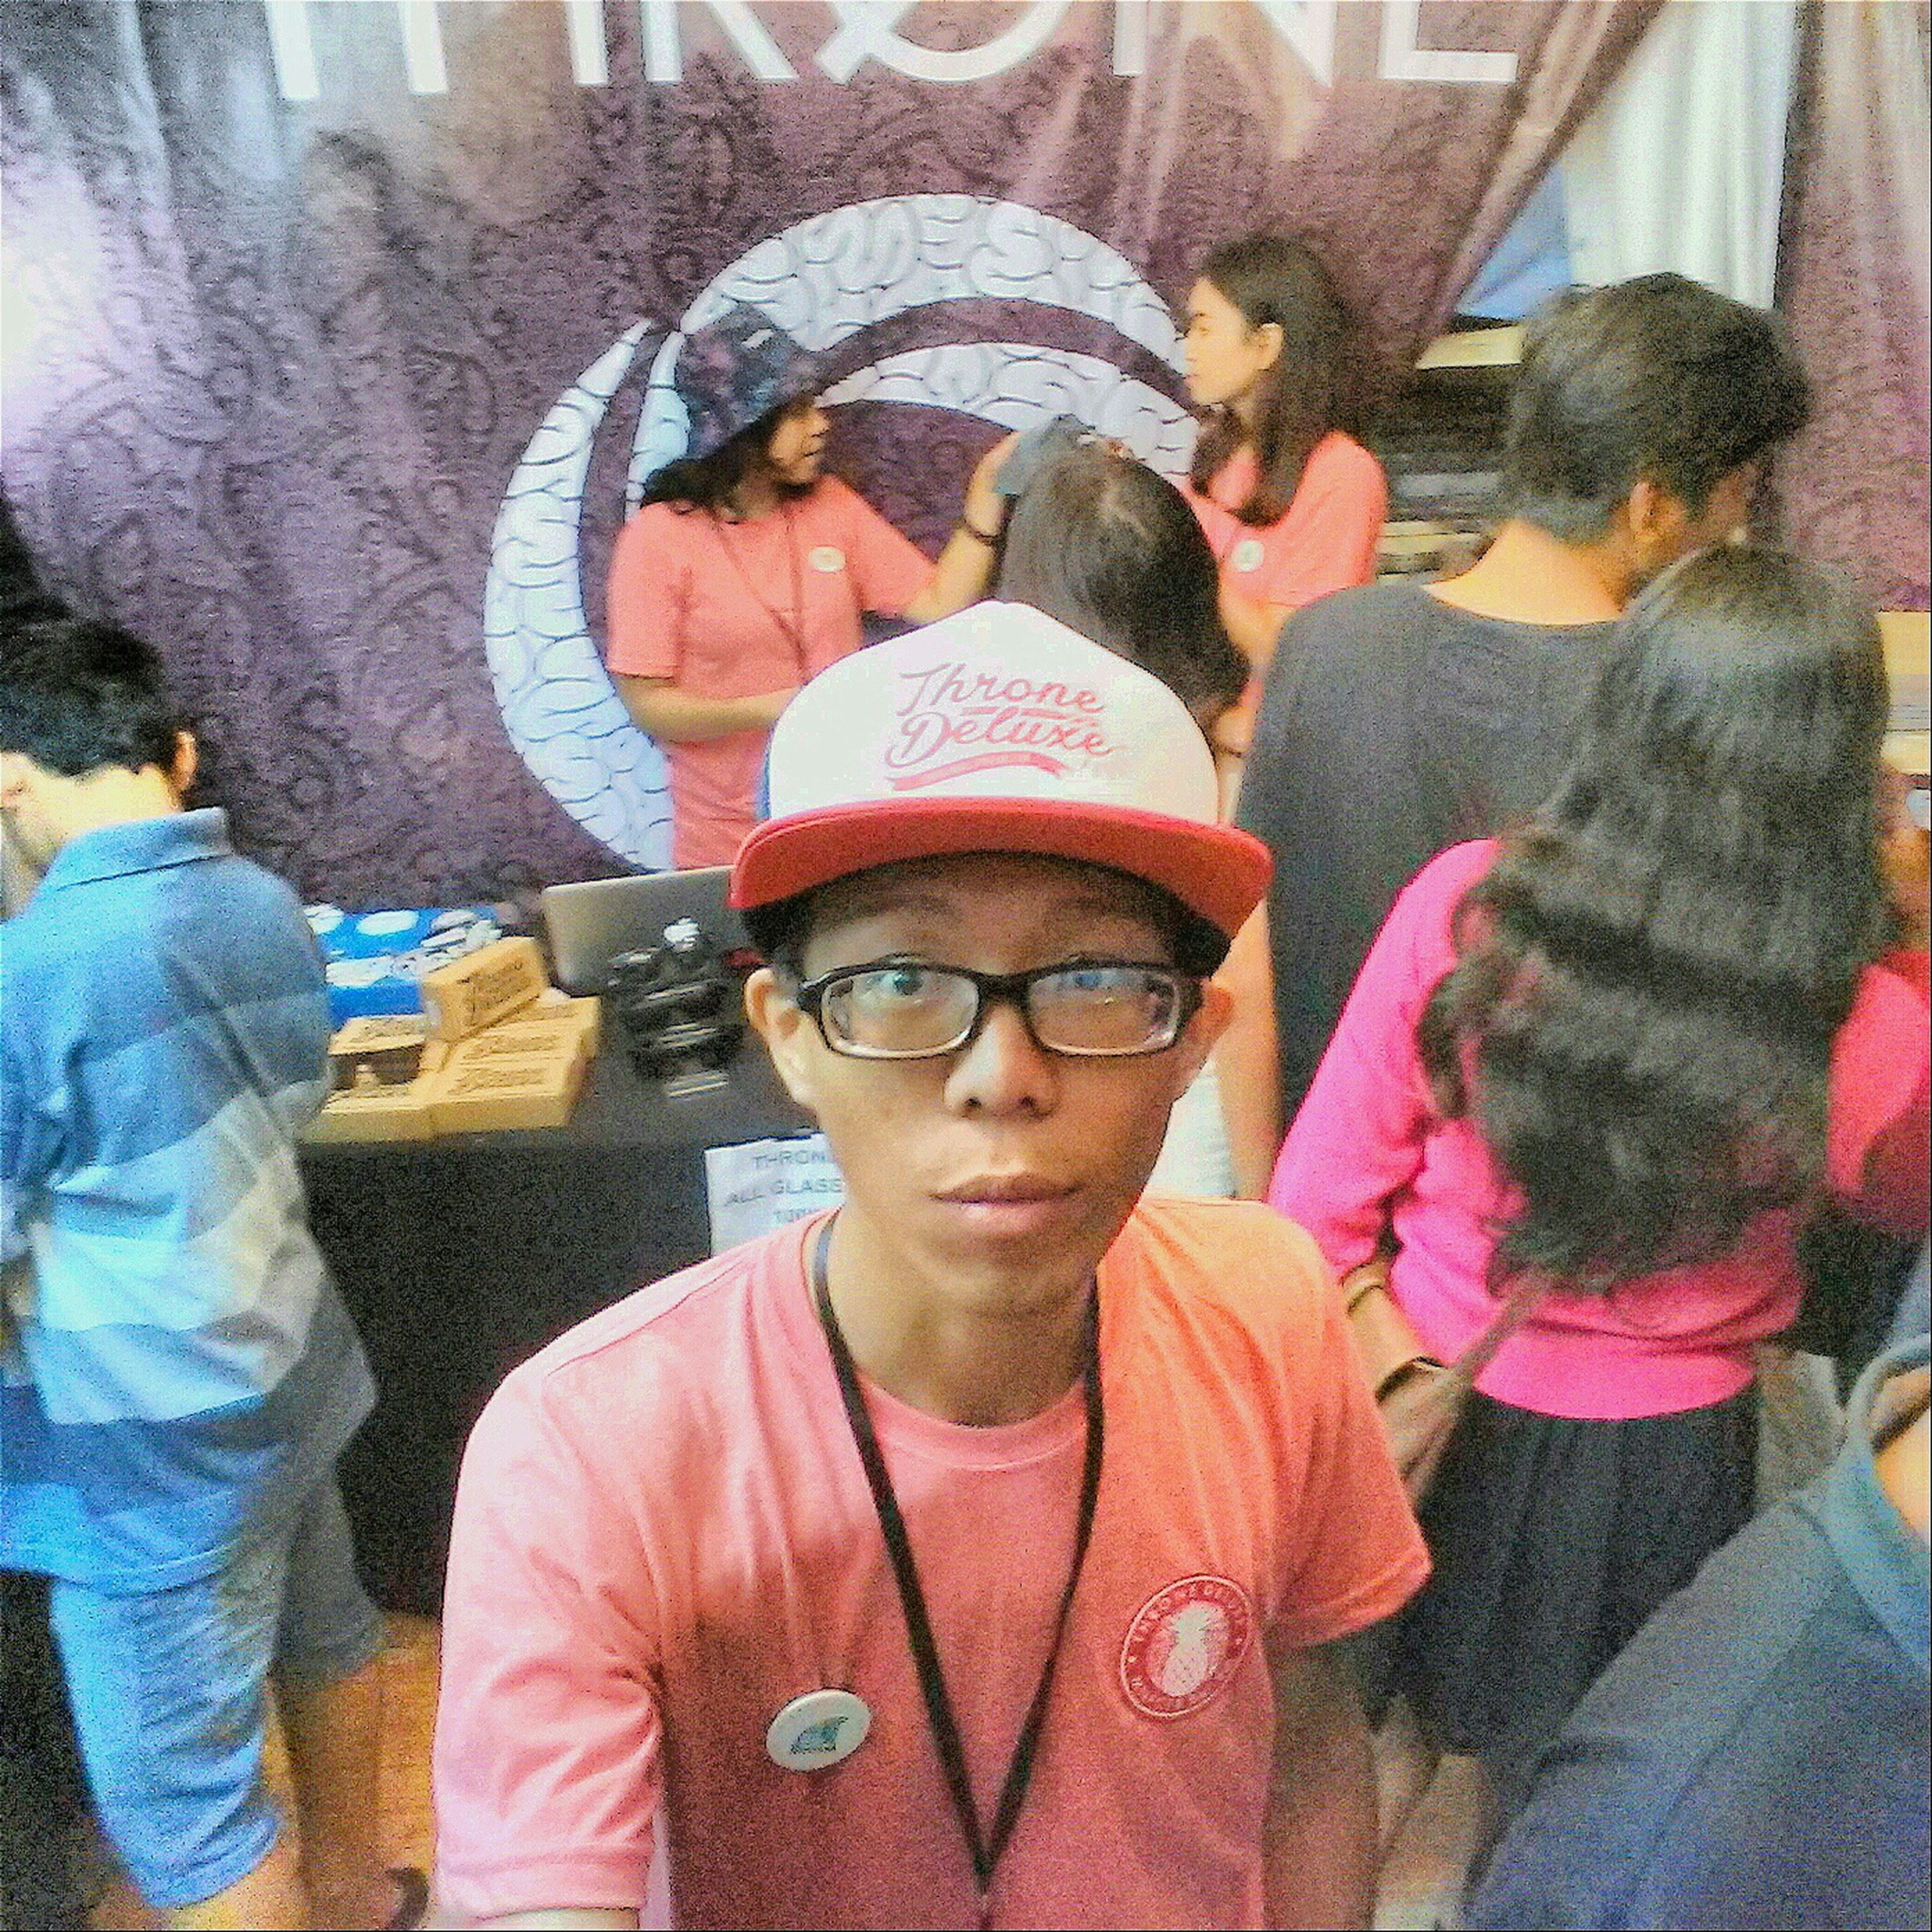 Booth Throne Deluxe Brand of Clothing Bali Selfportrait Festival Brand Clothing Music Bali